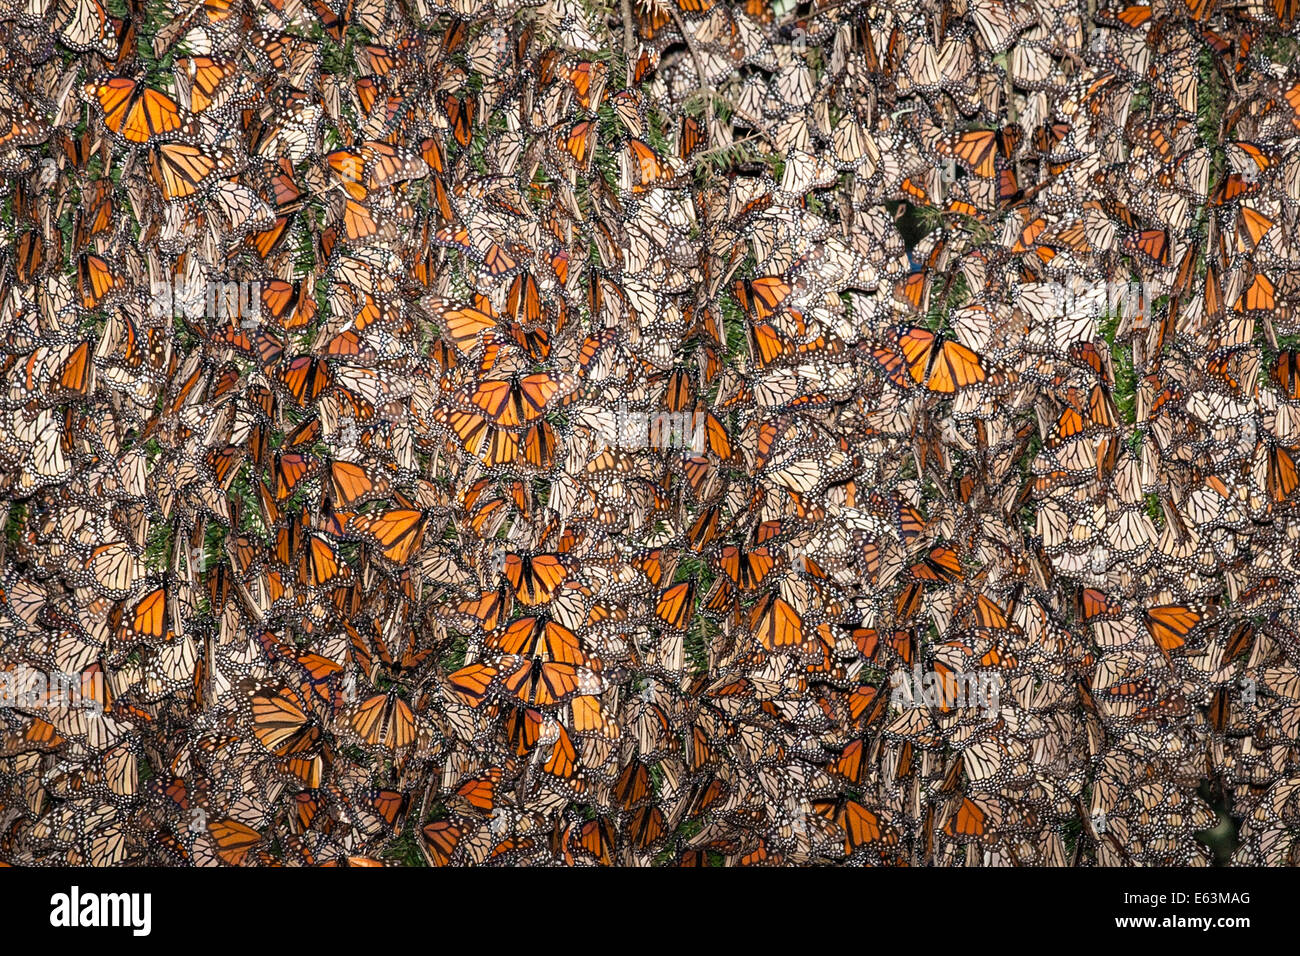 Thousands of monarch butterflies (Danaus plexippus) cling to an Oyamel Pine tree at the Monarch Butterfly Sanctuary - Stock Image